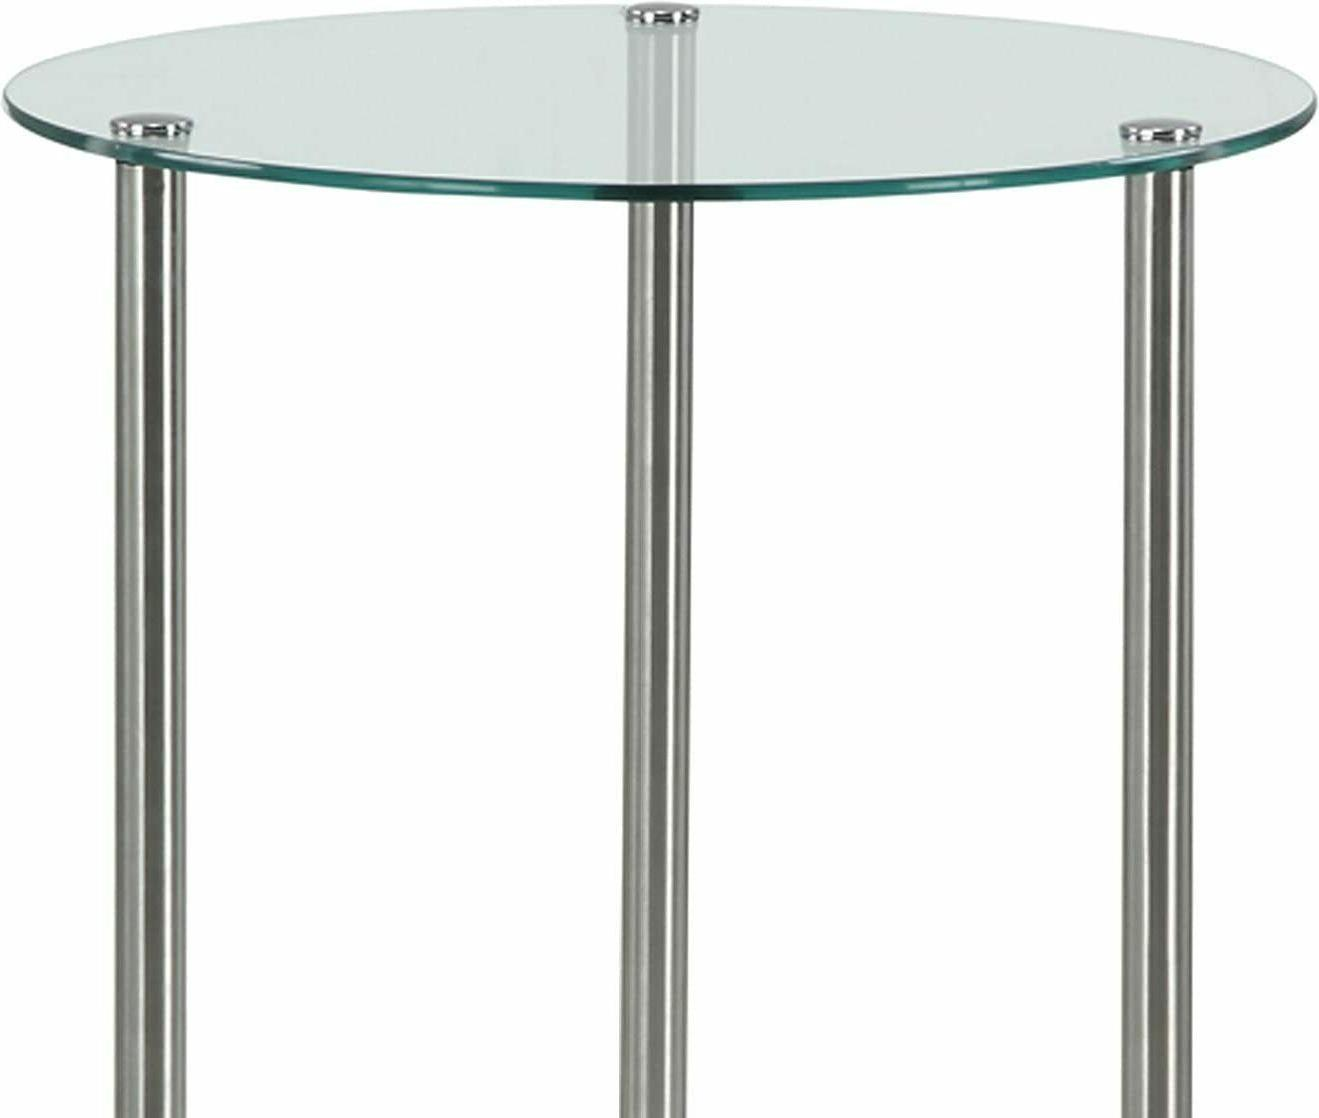 24 inch Table Stainless Steel